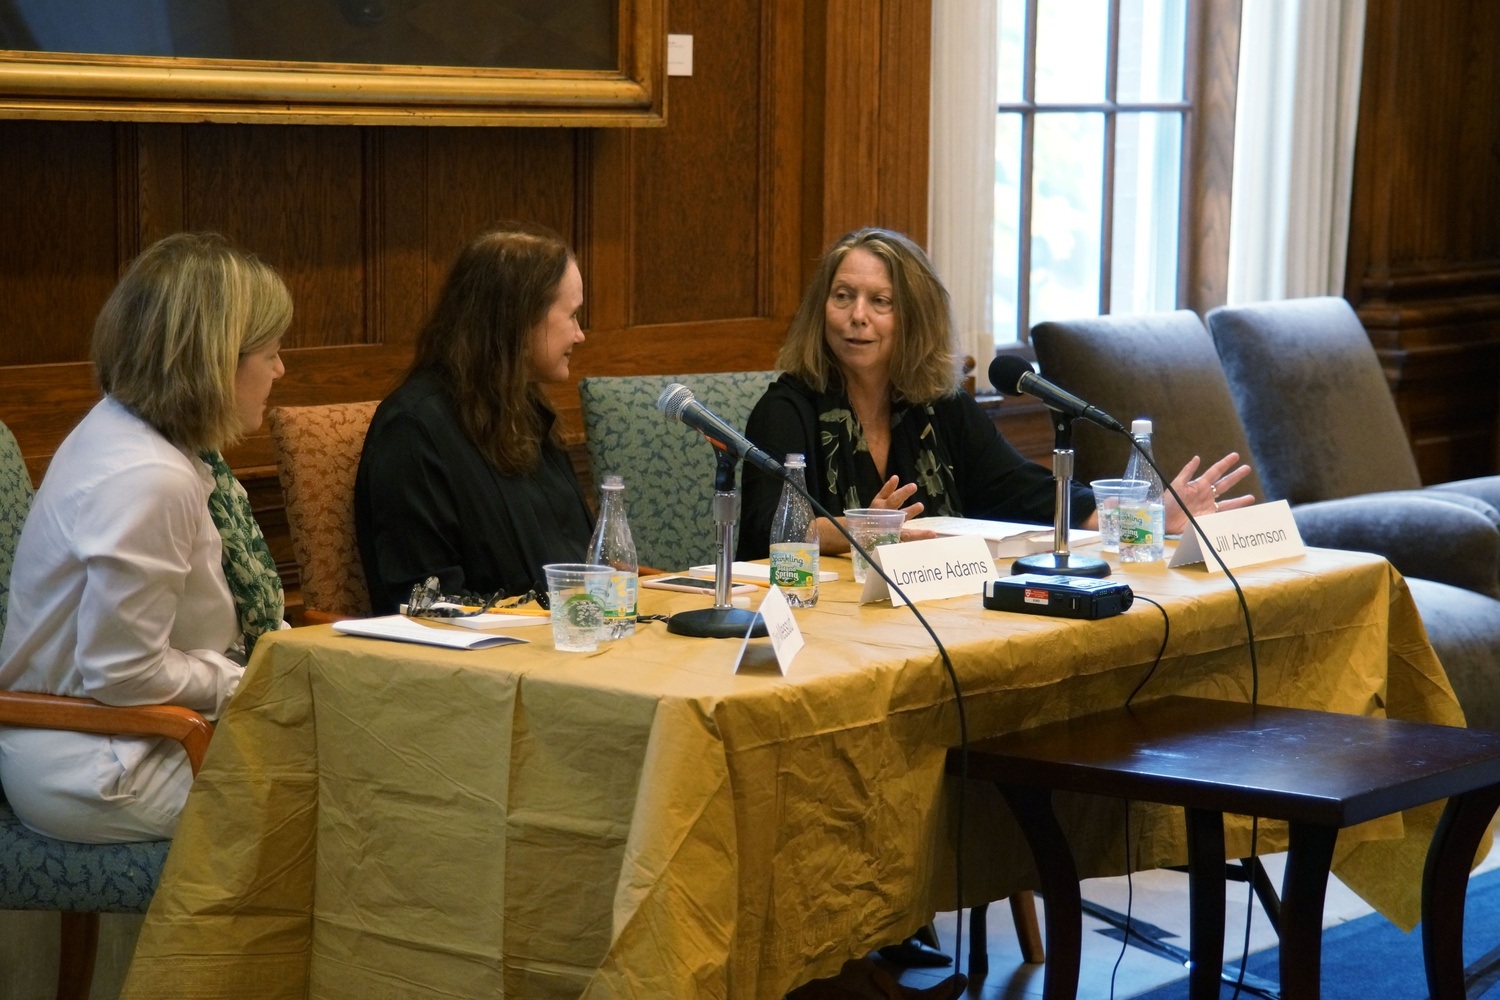 Jill E. Abramson '76, Lorraine Adams, and Claire Messud, all writers, discuss writing fiction and literature.